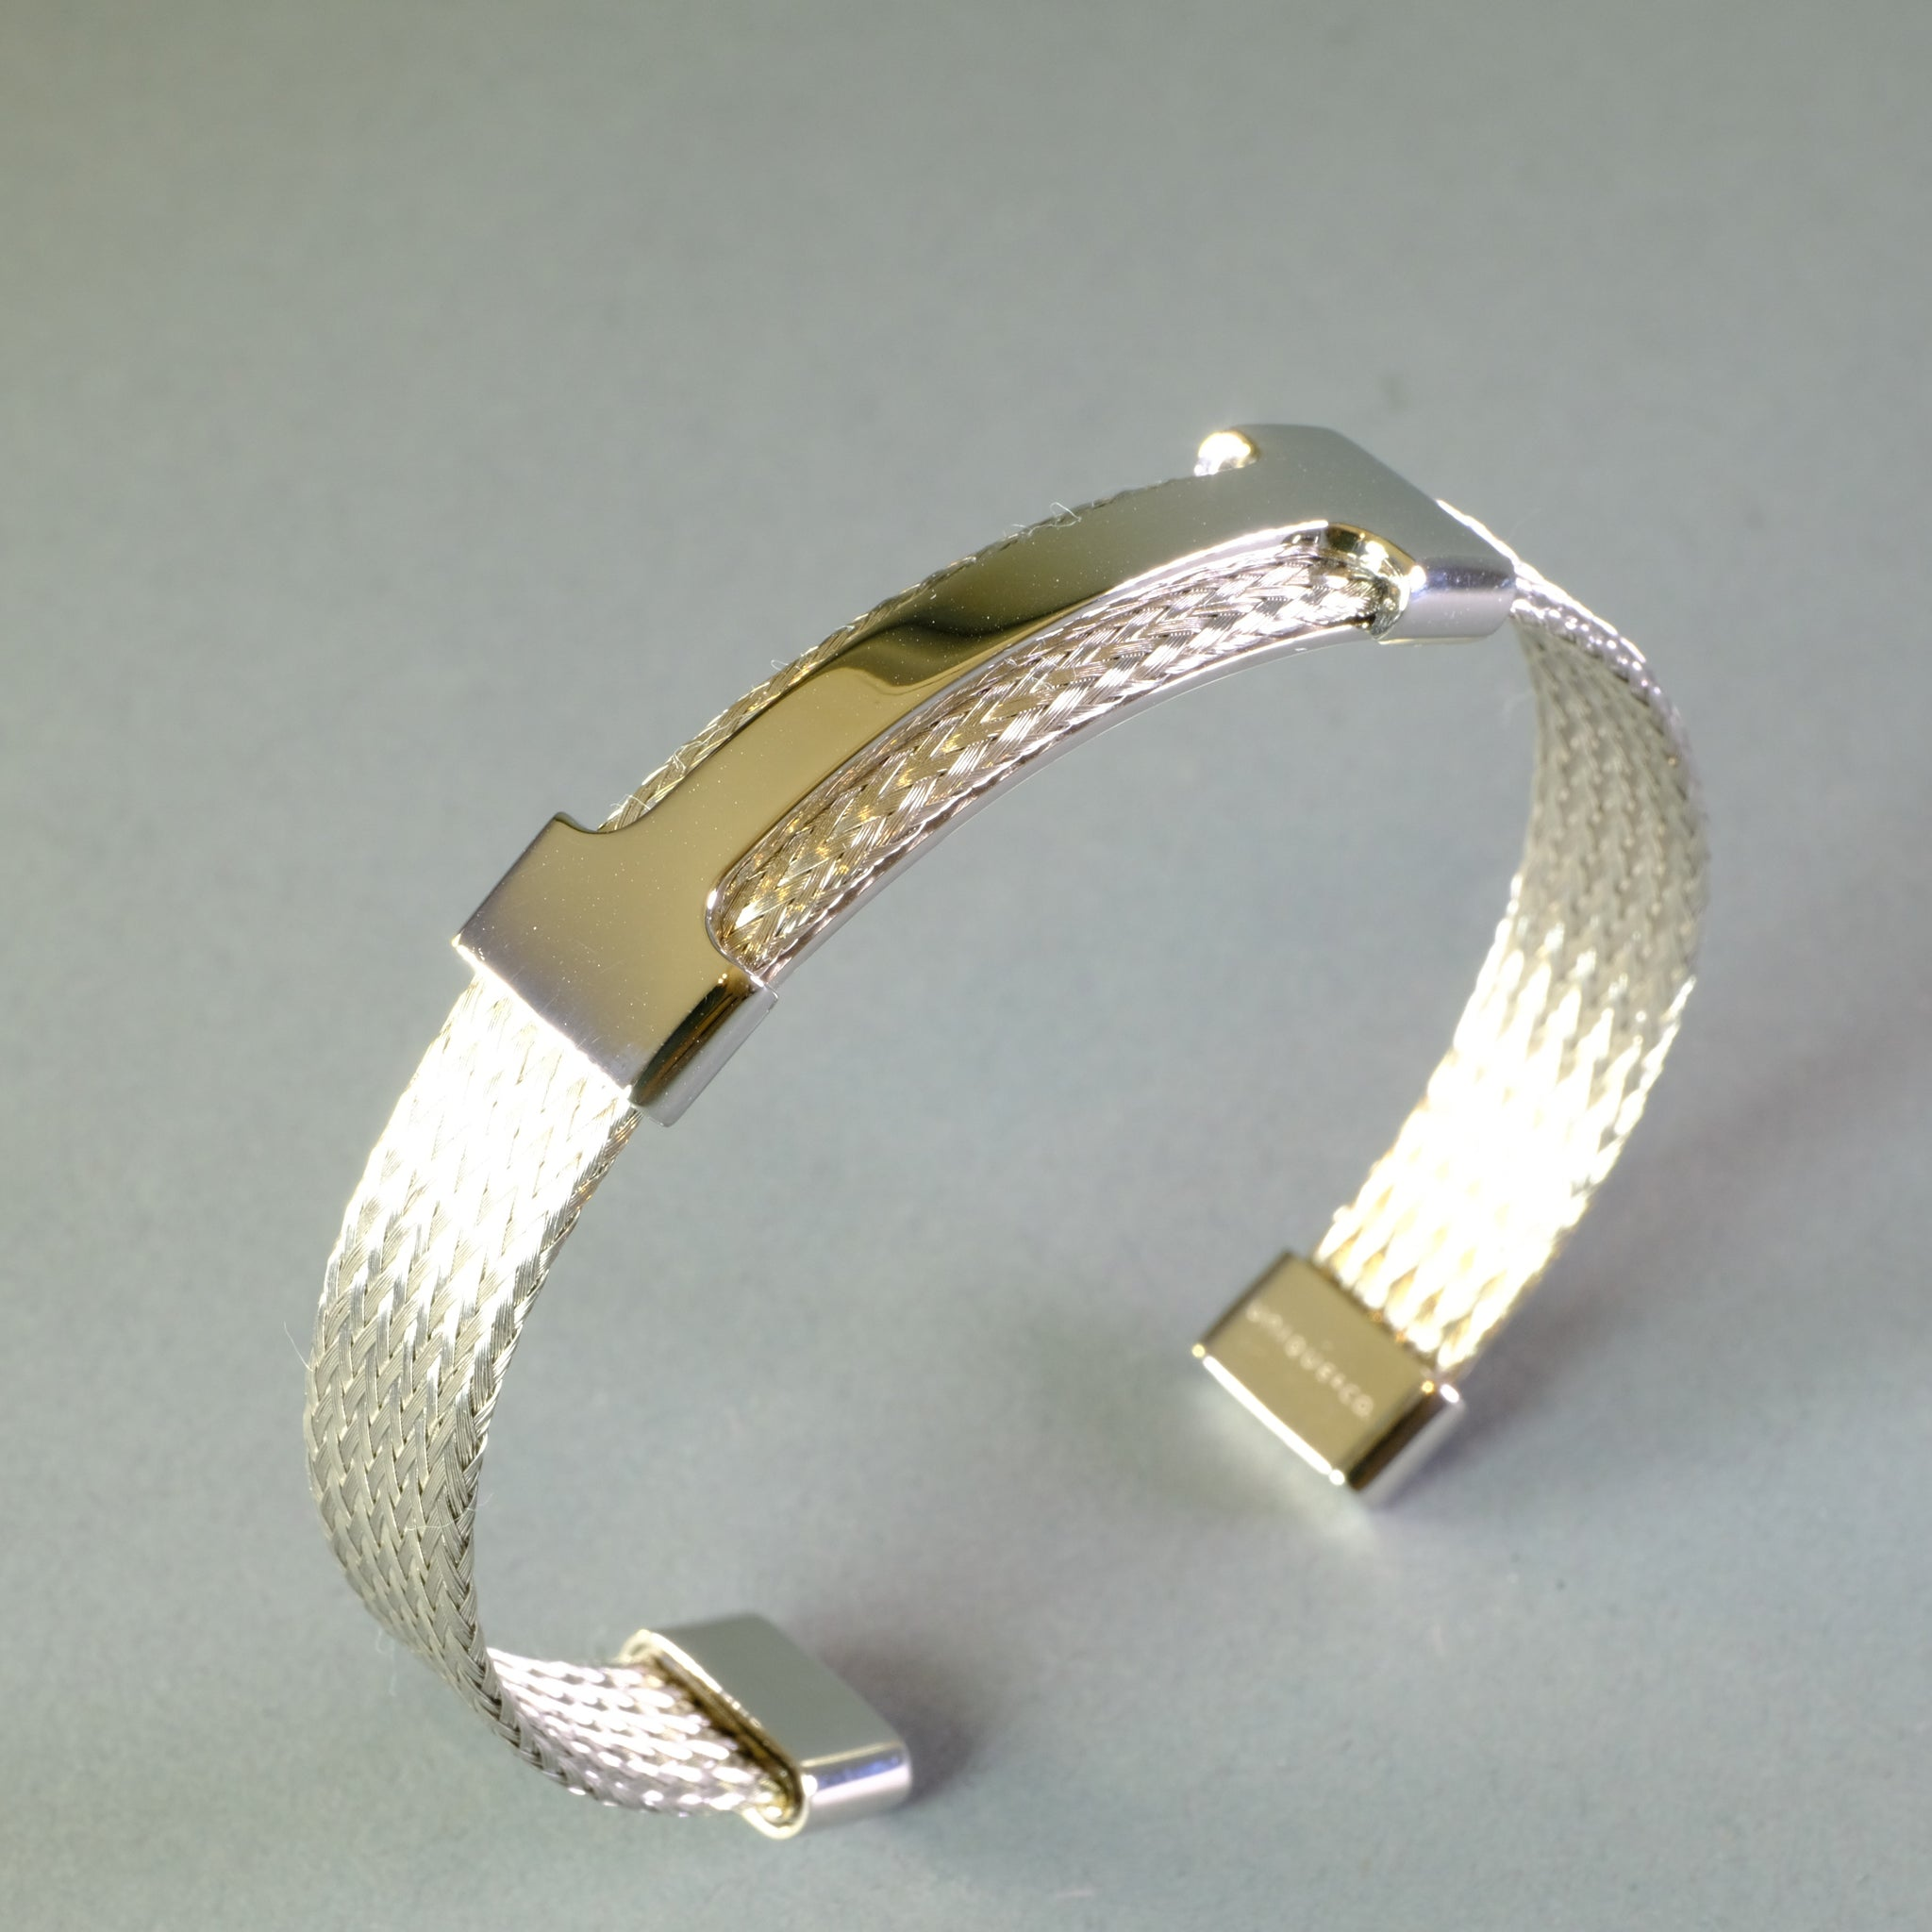 Gents Stainless Steel Bangle by 'Unique Designs'